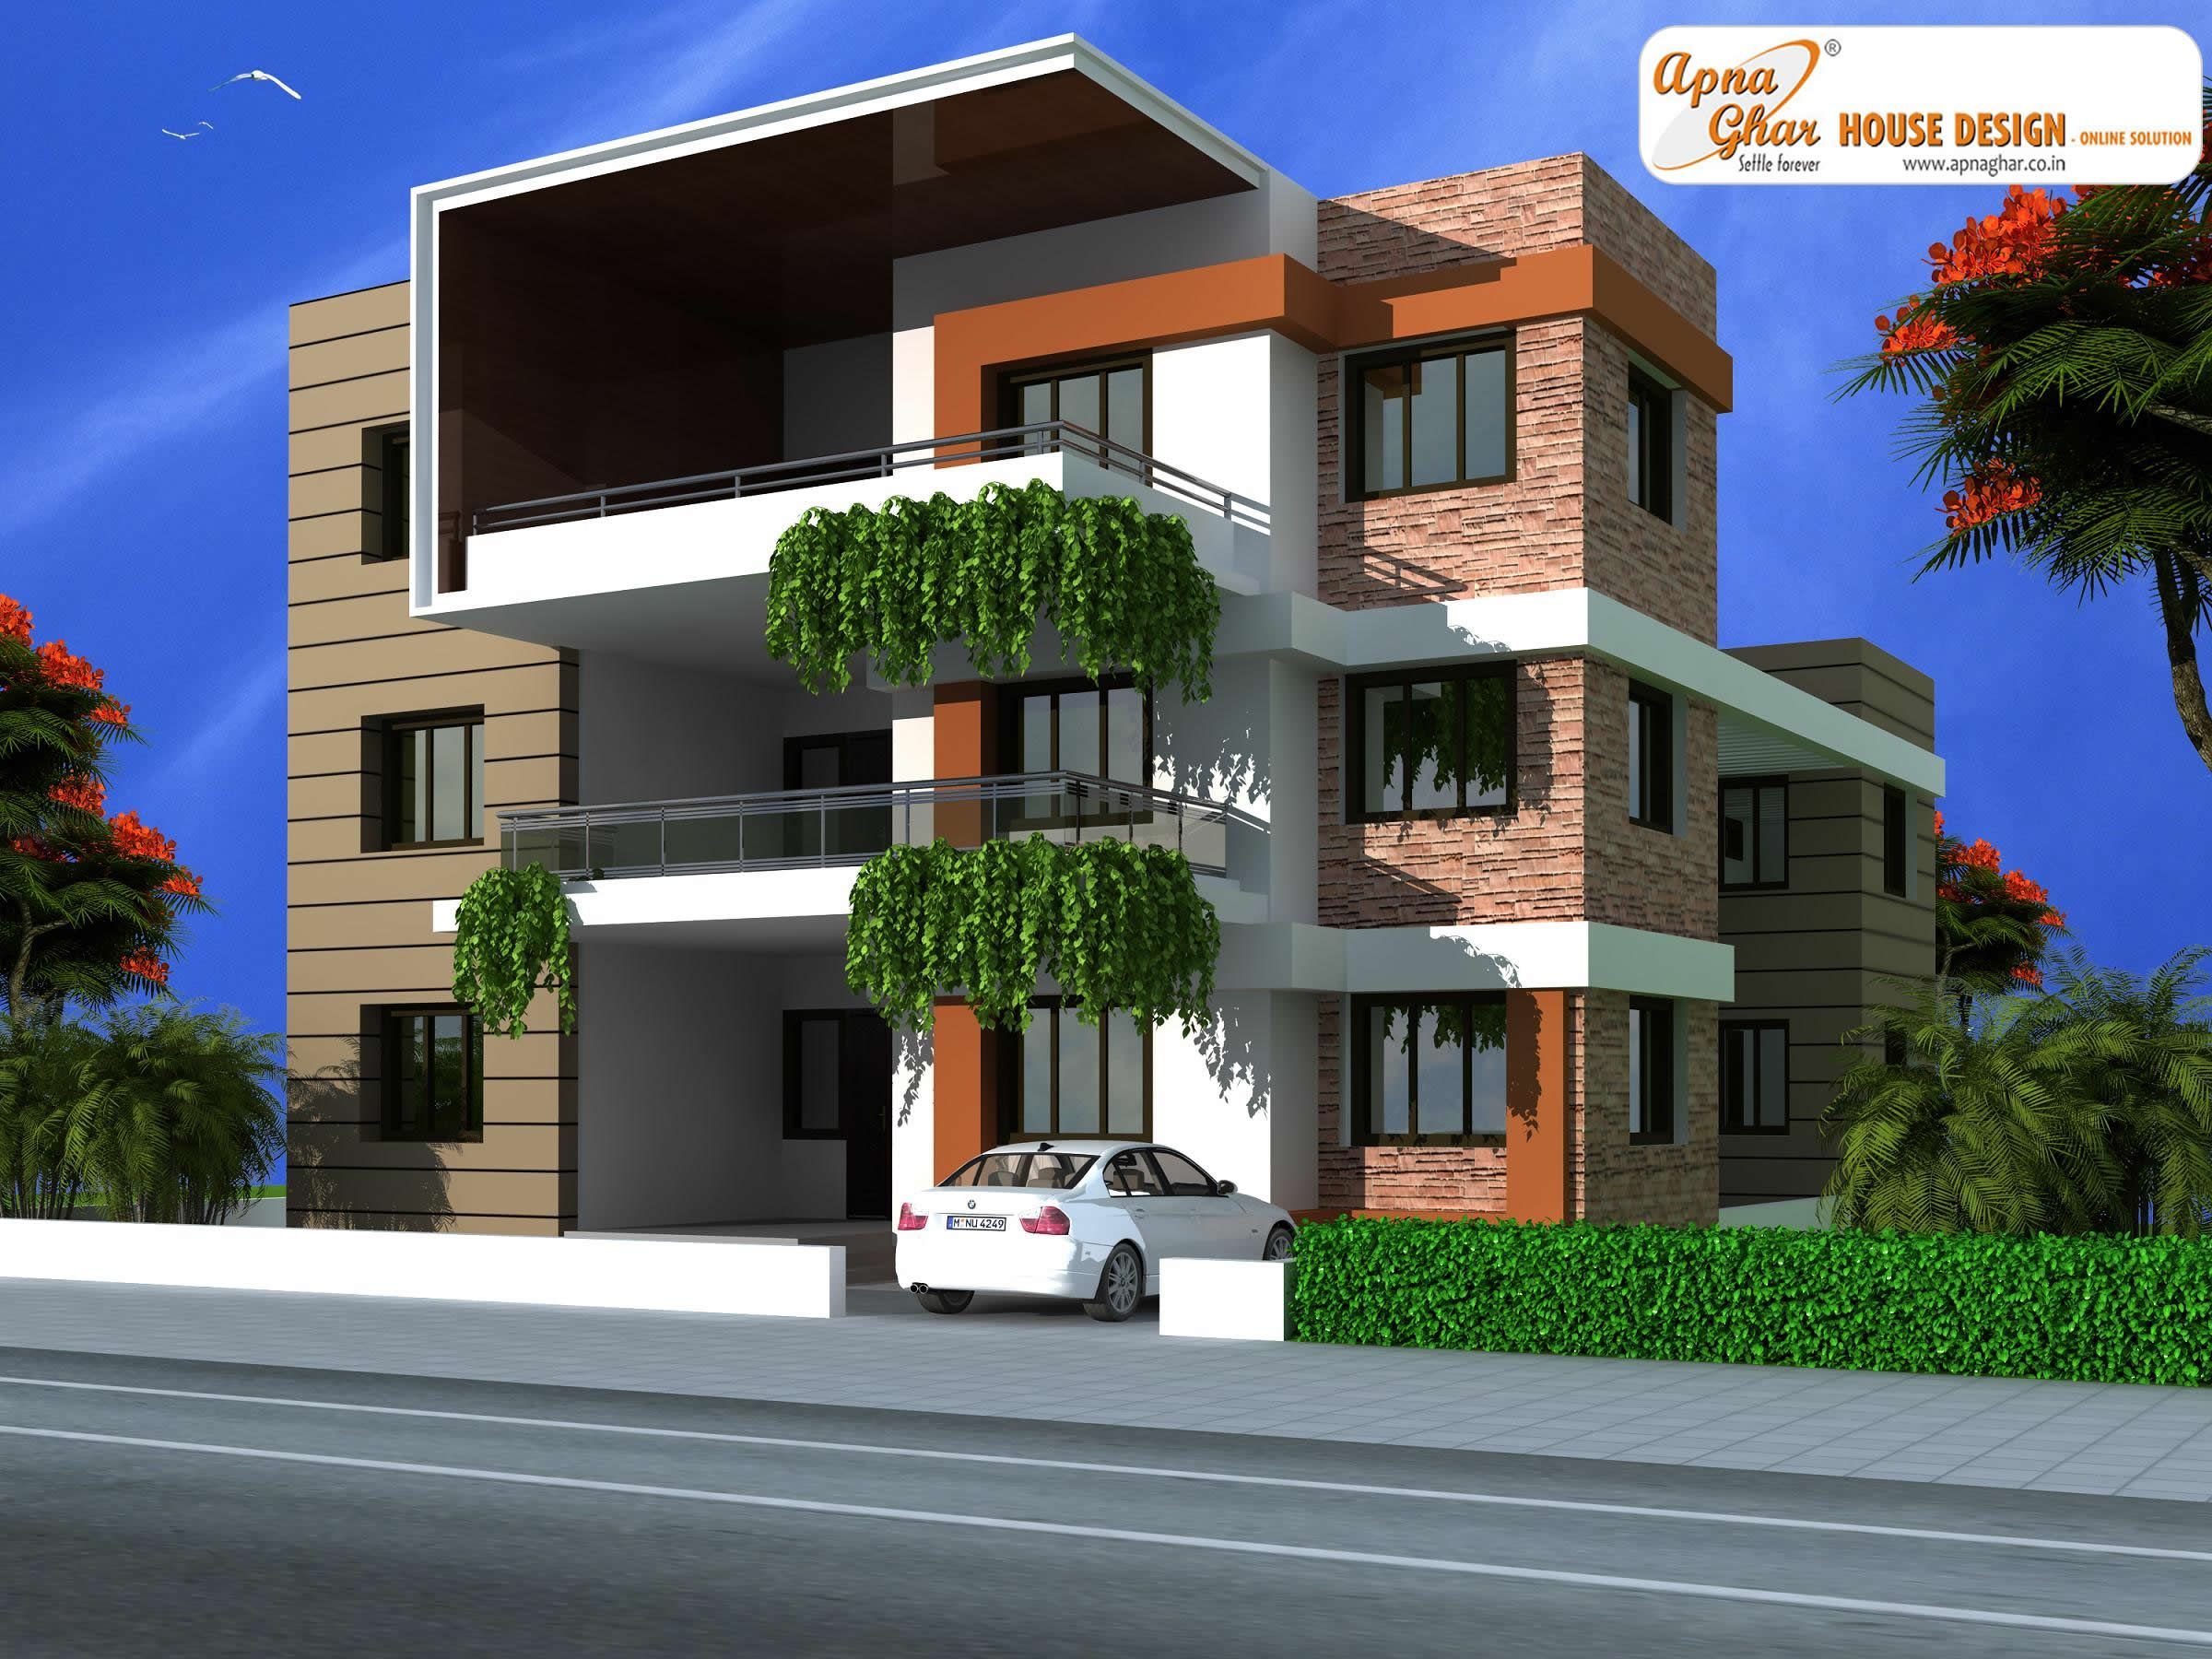 11 Bedroom Modern Triplex 3 Floor House Design Area 378 Sq Mts 18m X 21m Click On House Designs Exterior Modern Architecture House Modern House Design